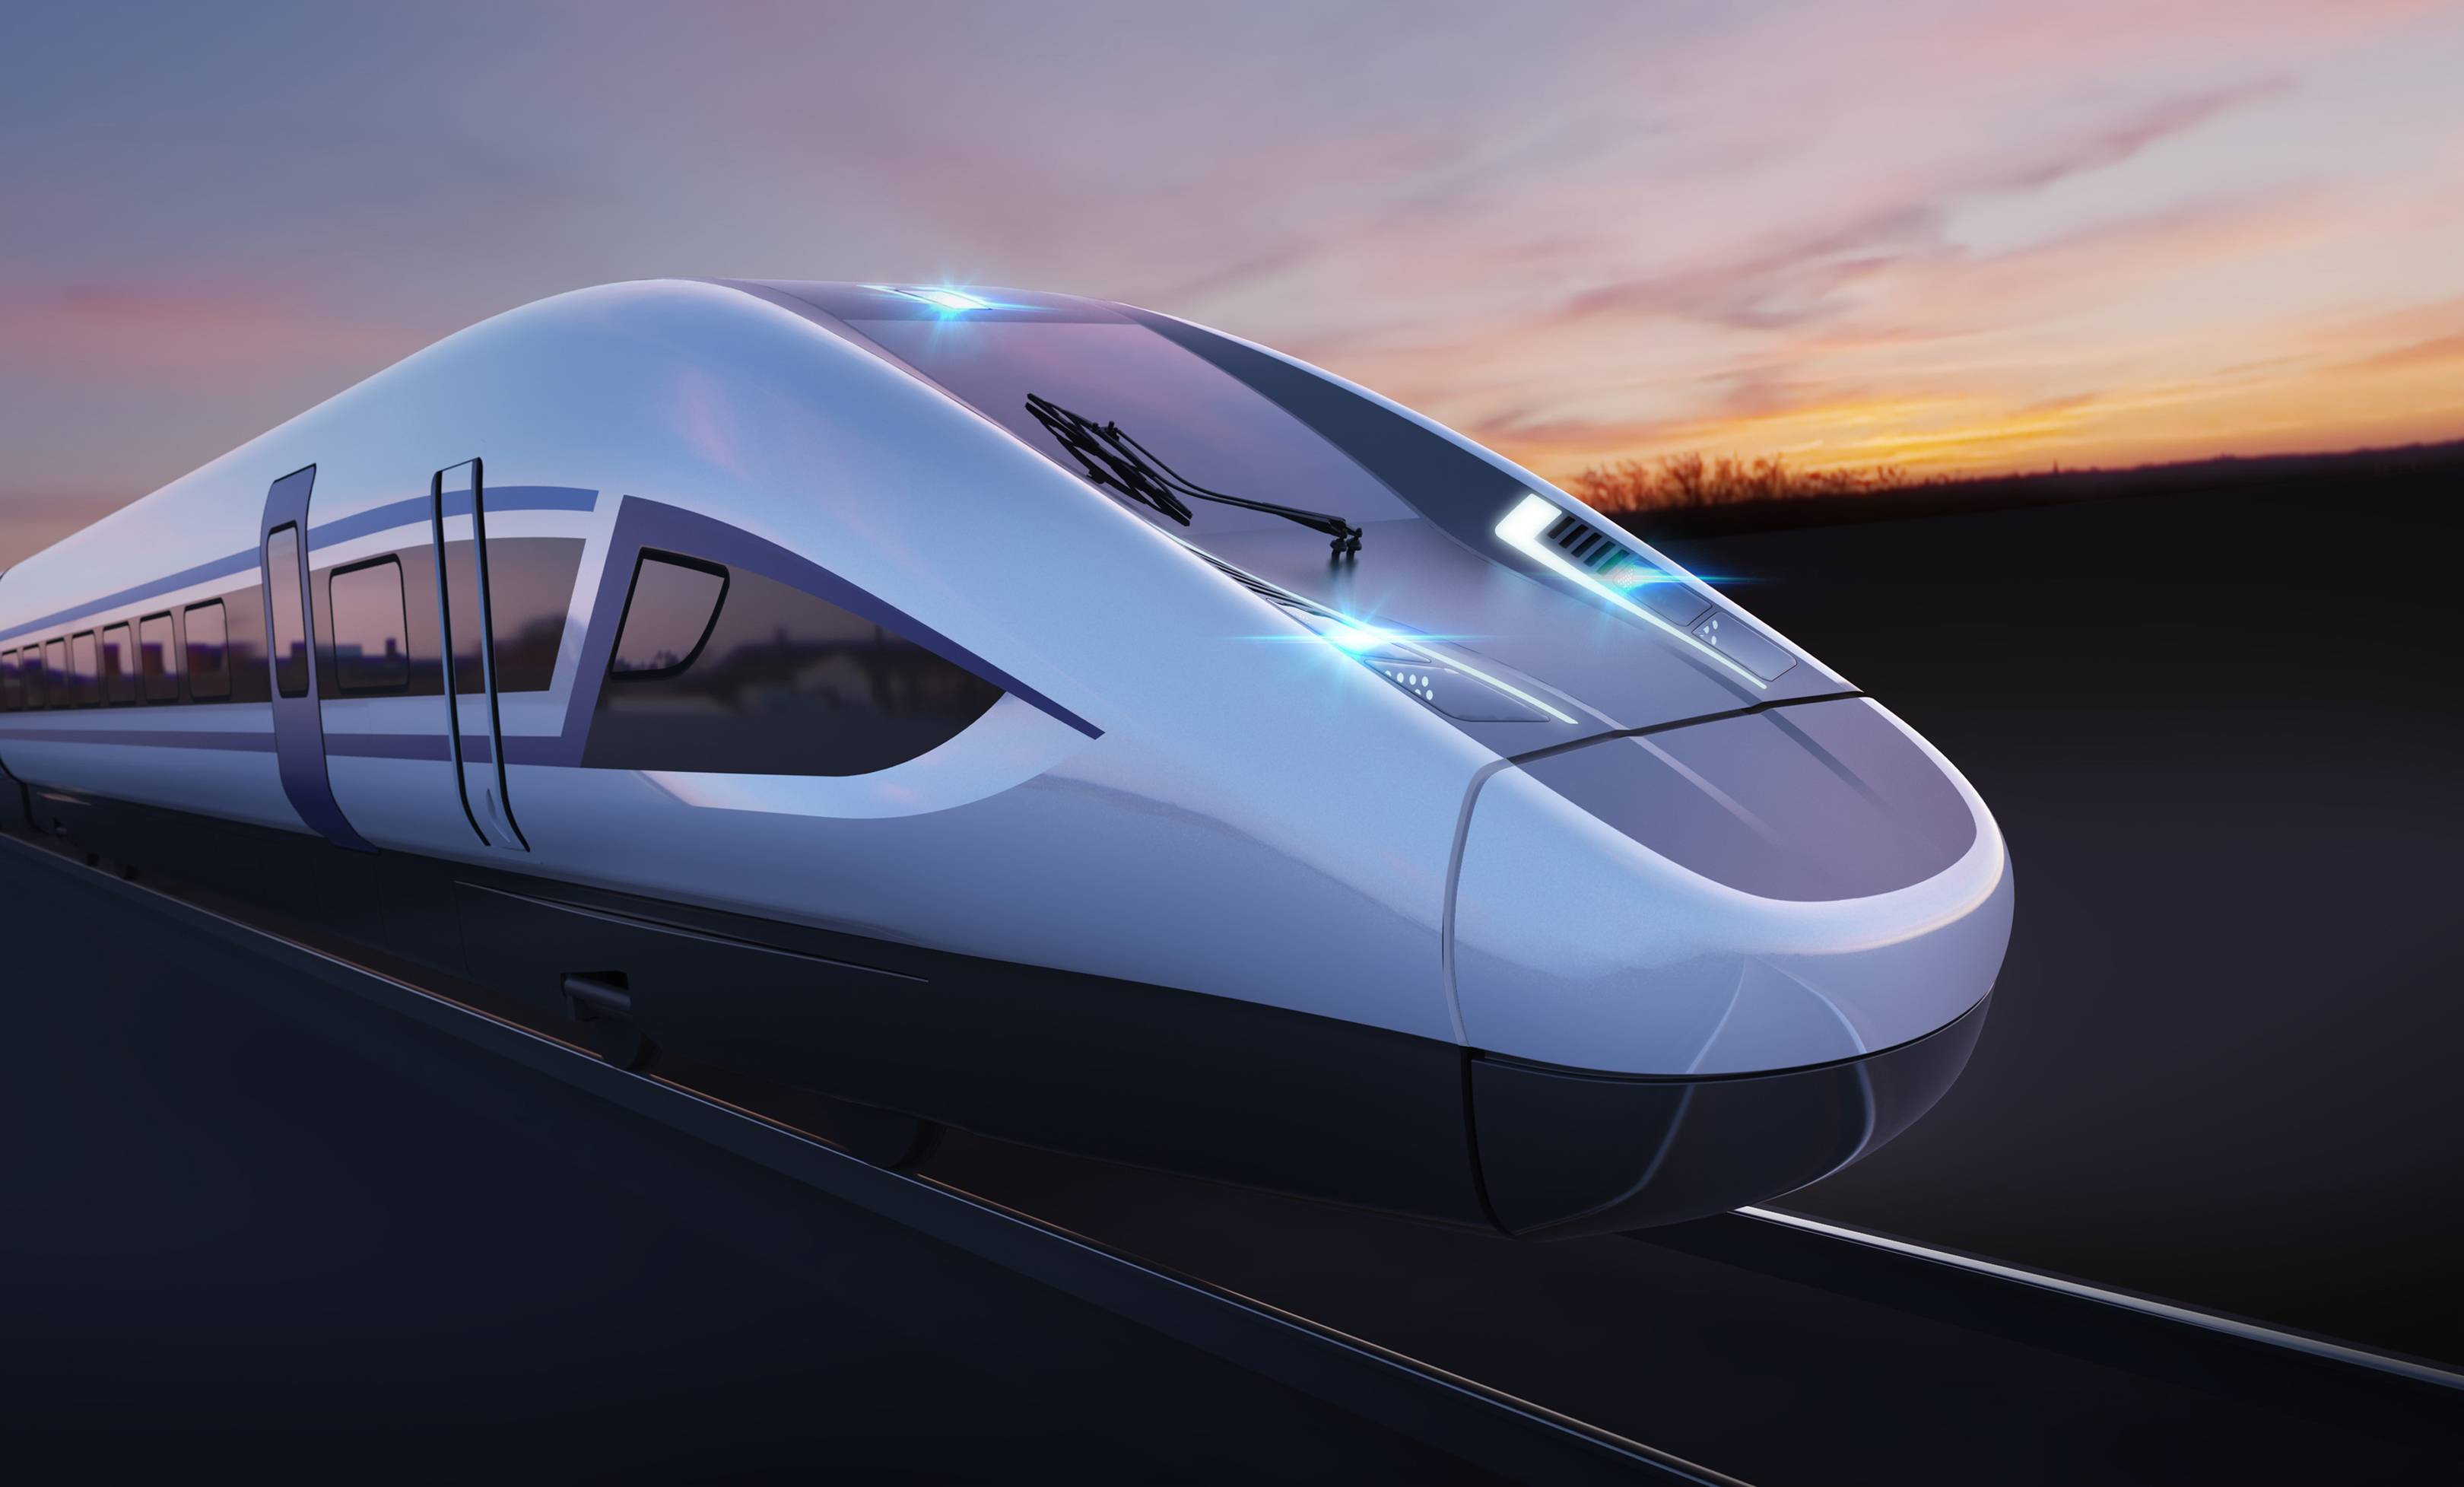 All the pros and cons of the UK scrapping the HS2 rail link